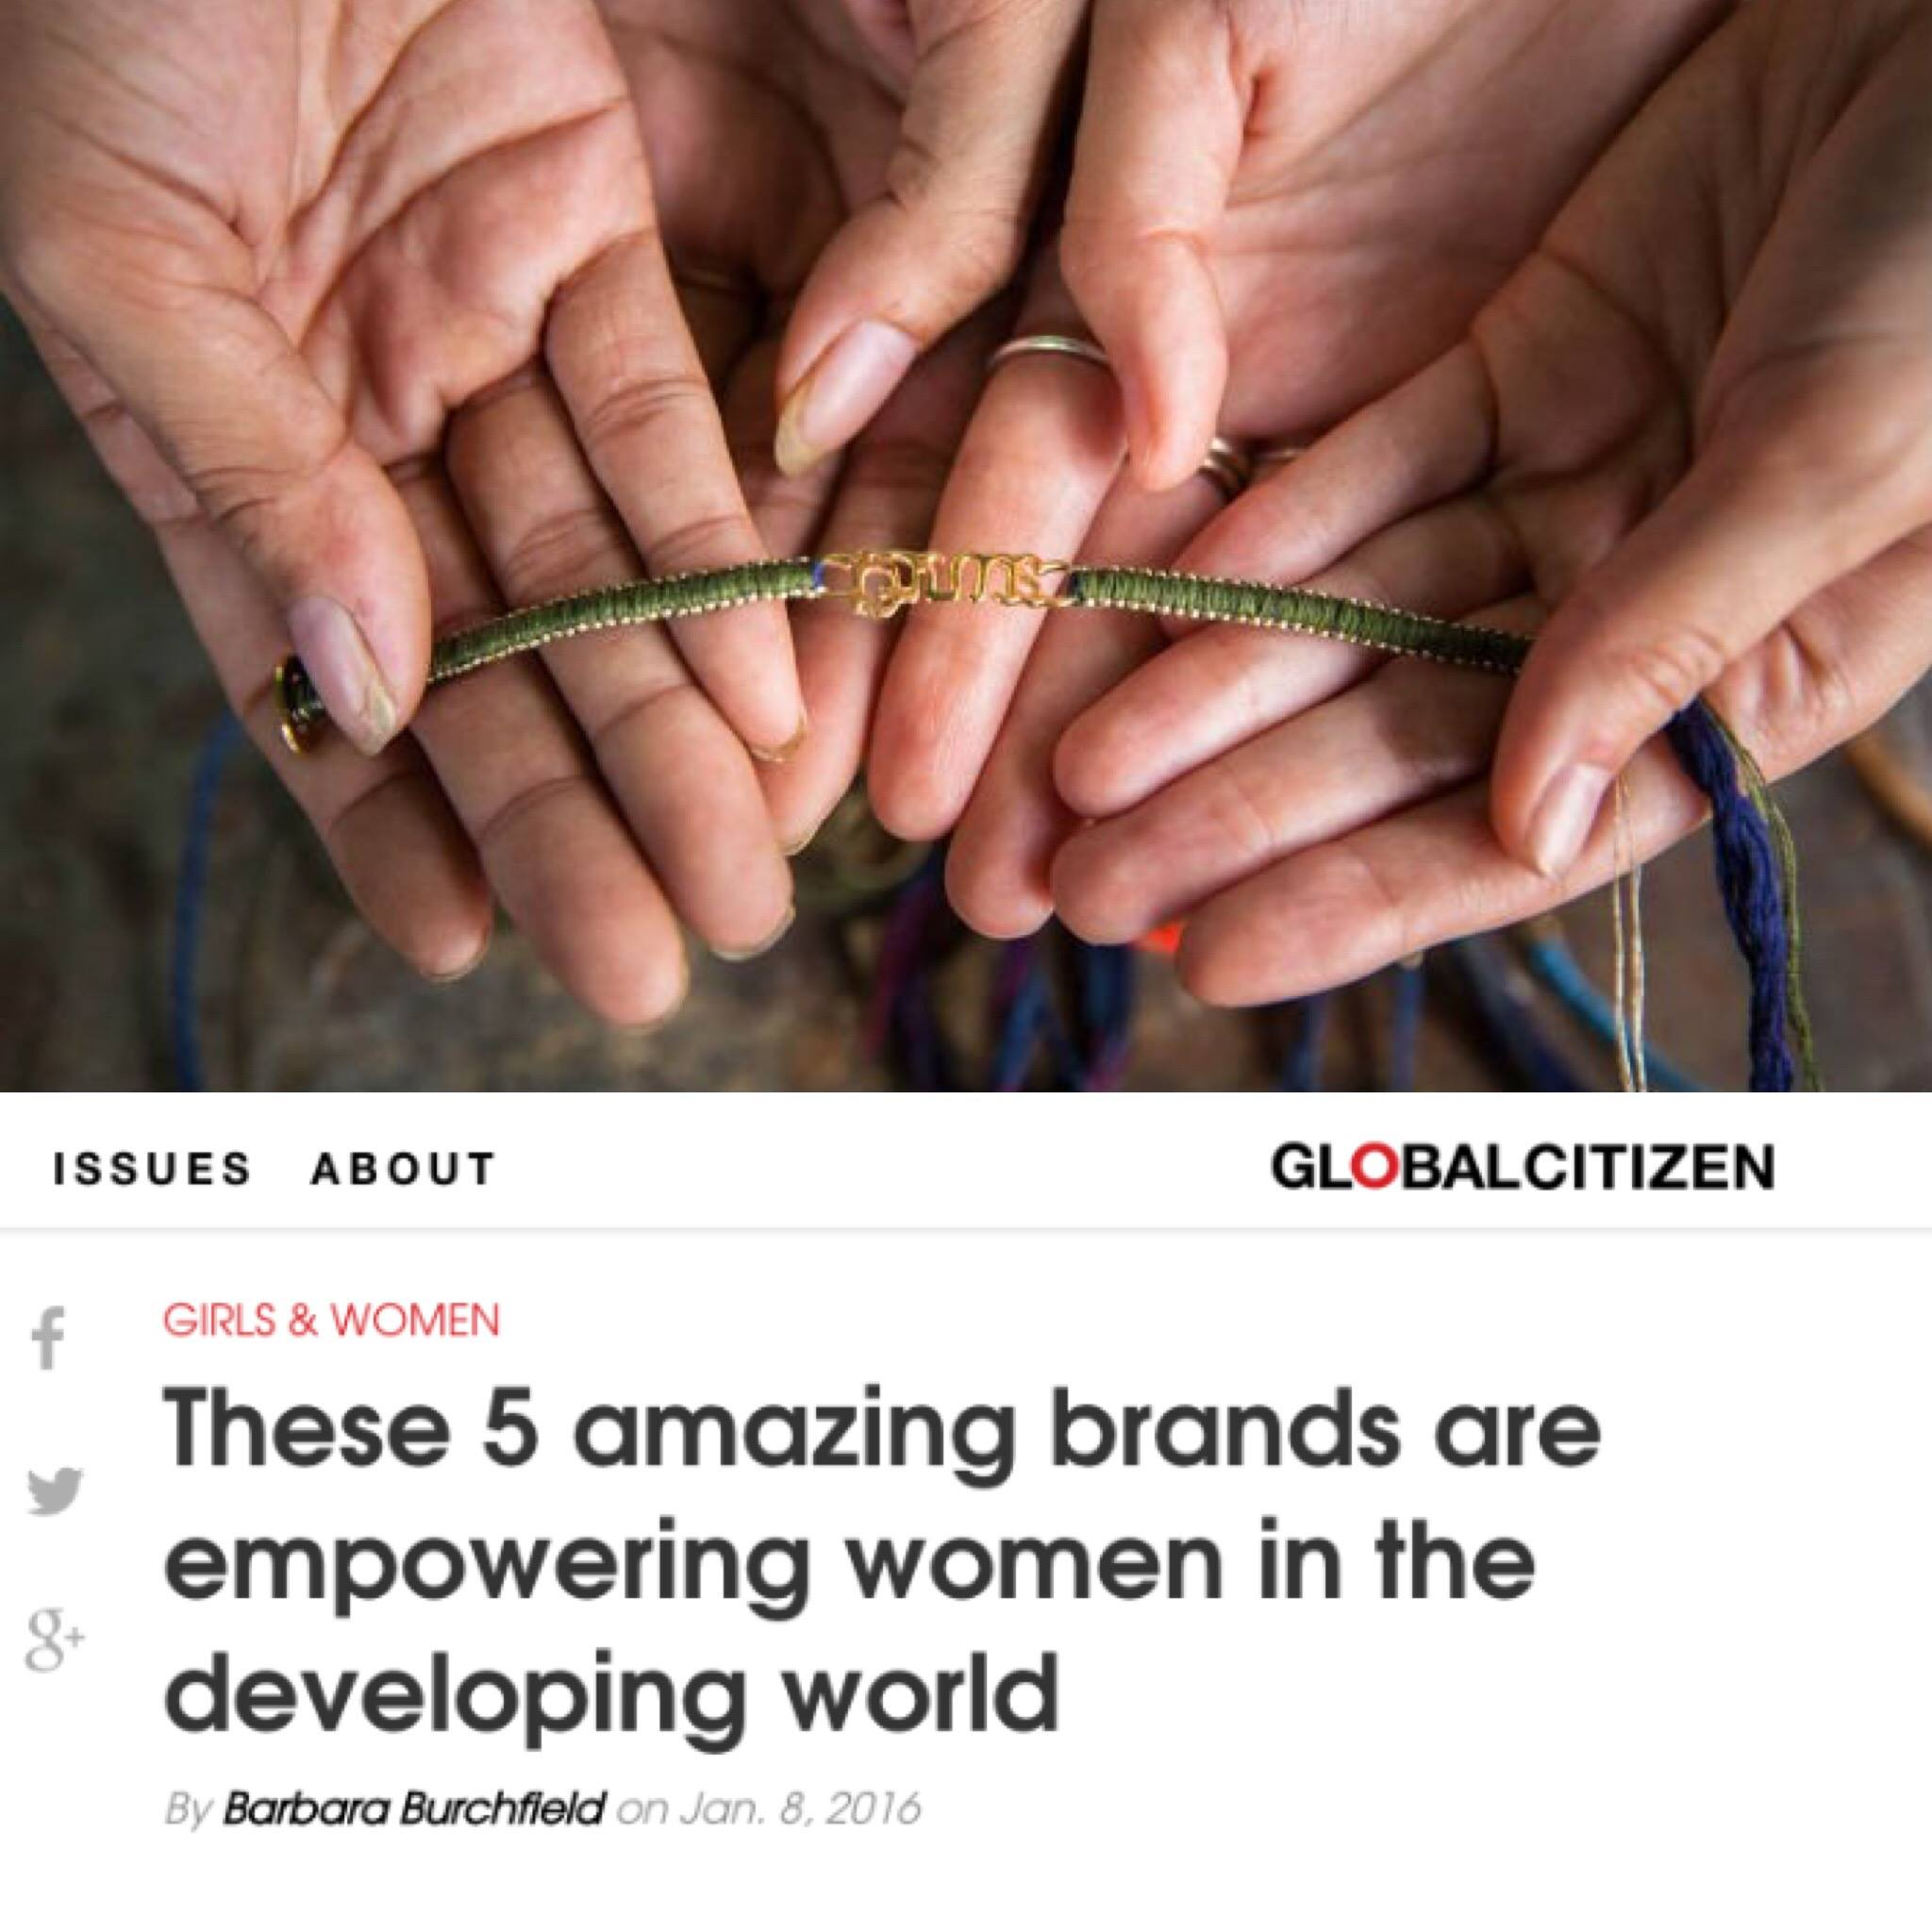 These 5 amazing brands are empowering women in the developing world